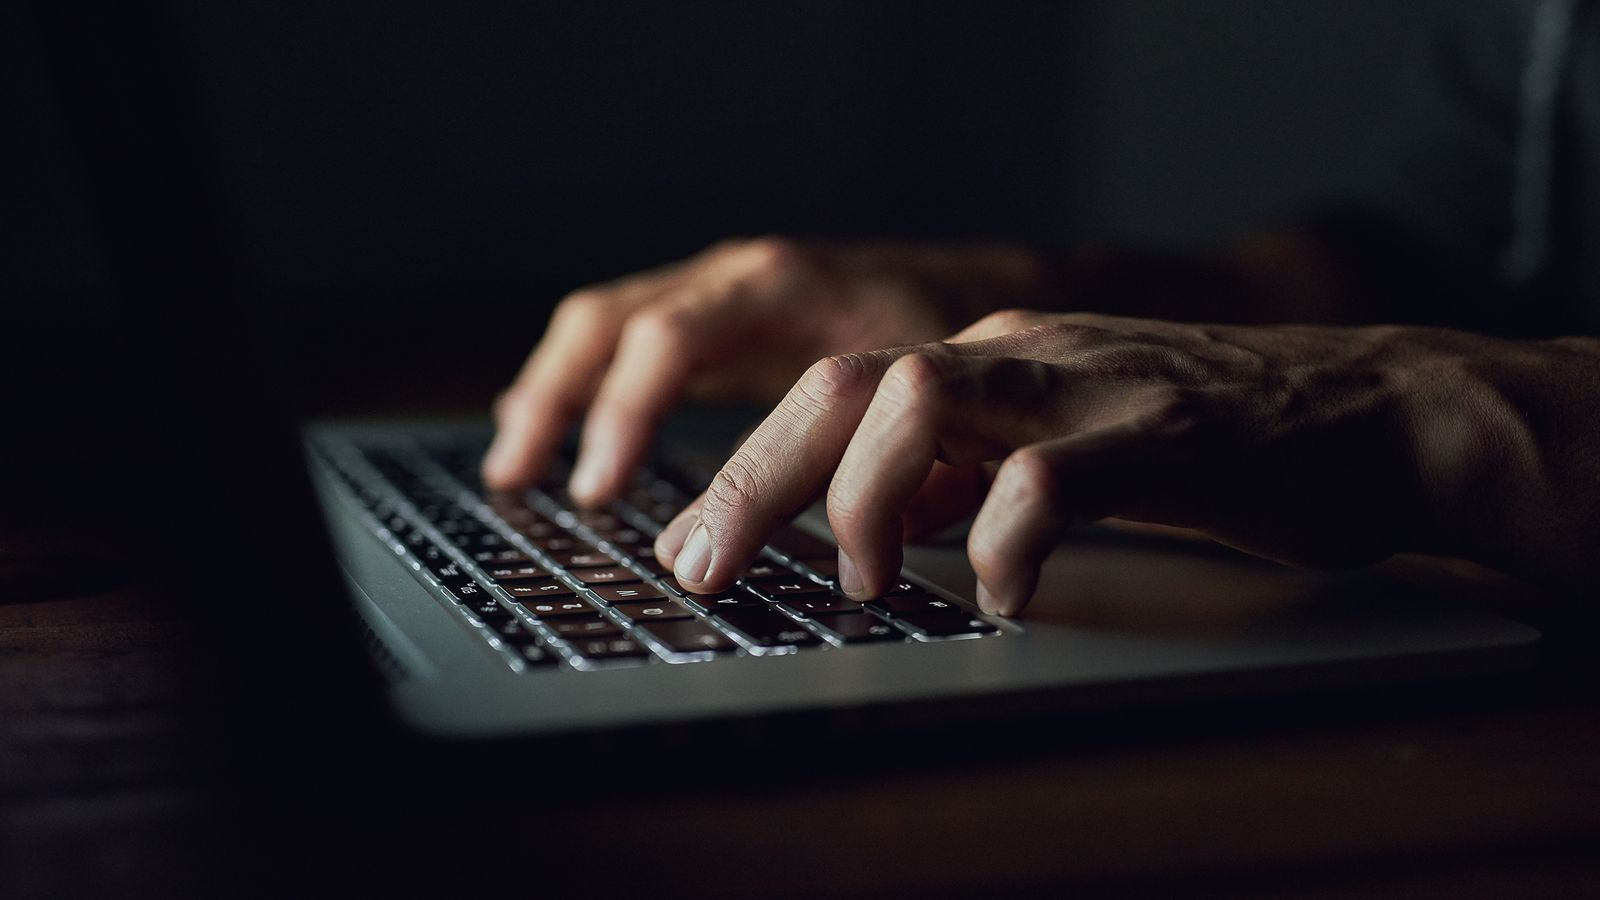 COVID-19: Fraud and computer misuse crimes rise by more than a third in England and Wales during pandemic